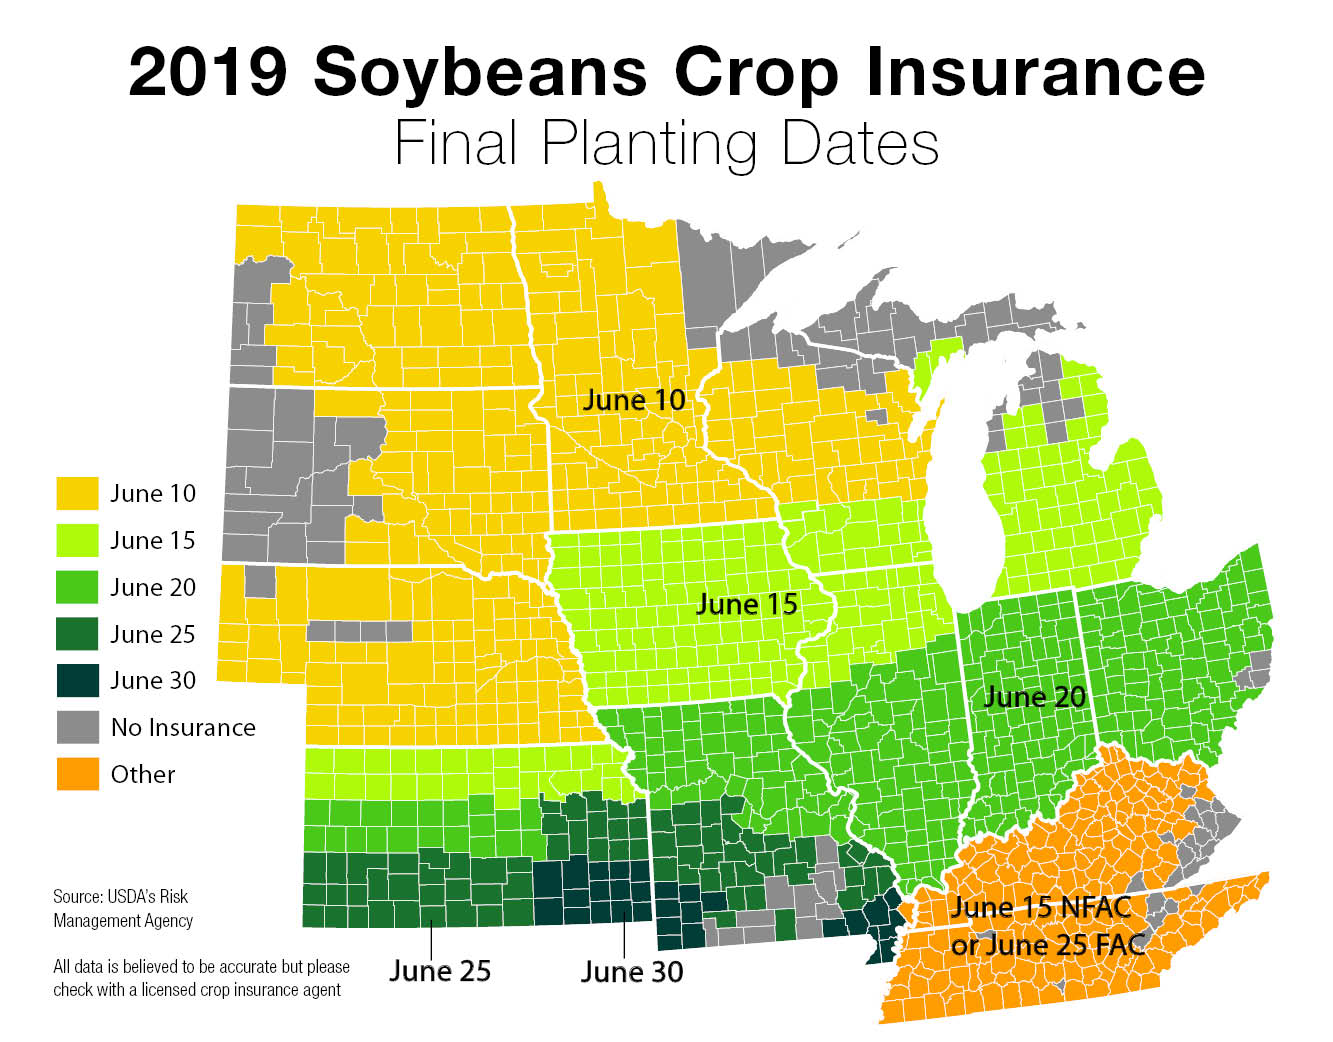 2019 soybean final planting dates